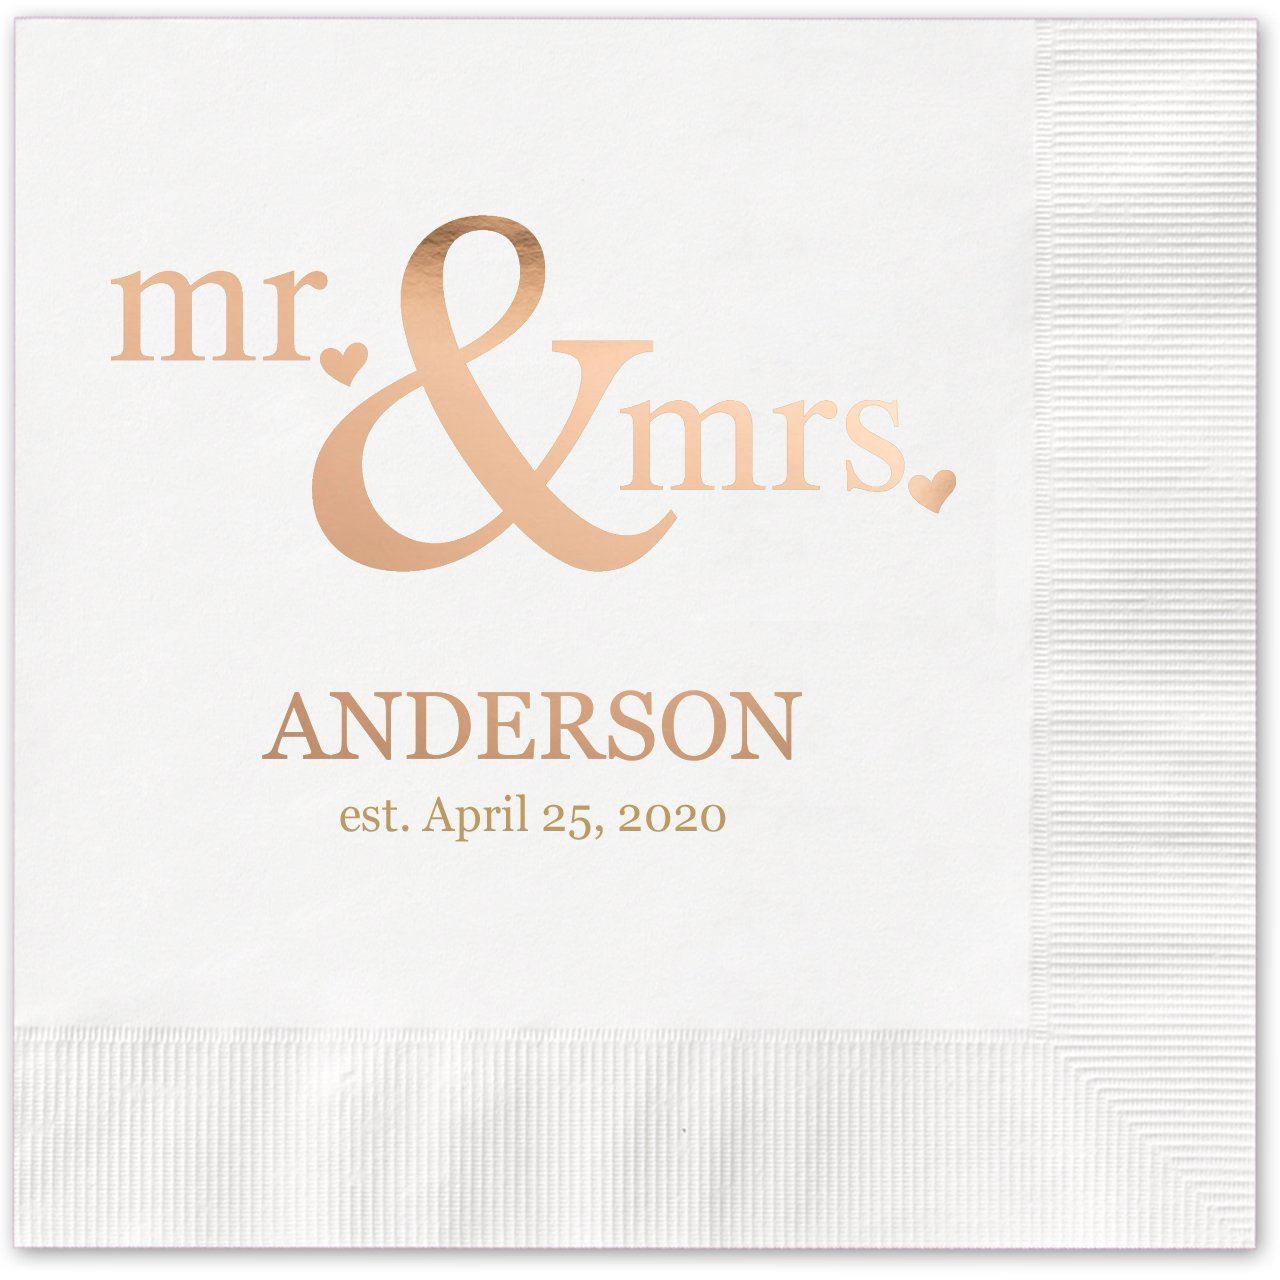 Mr & Mrs Hearts Personalized Beverage Cocktail Napkins - 100 Custom Printed White Paper Napkins with choice of foil